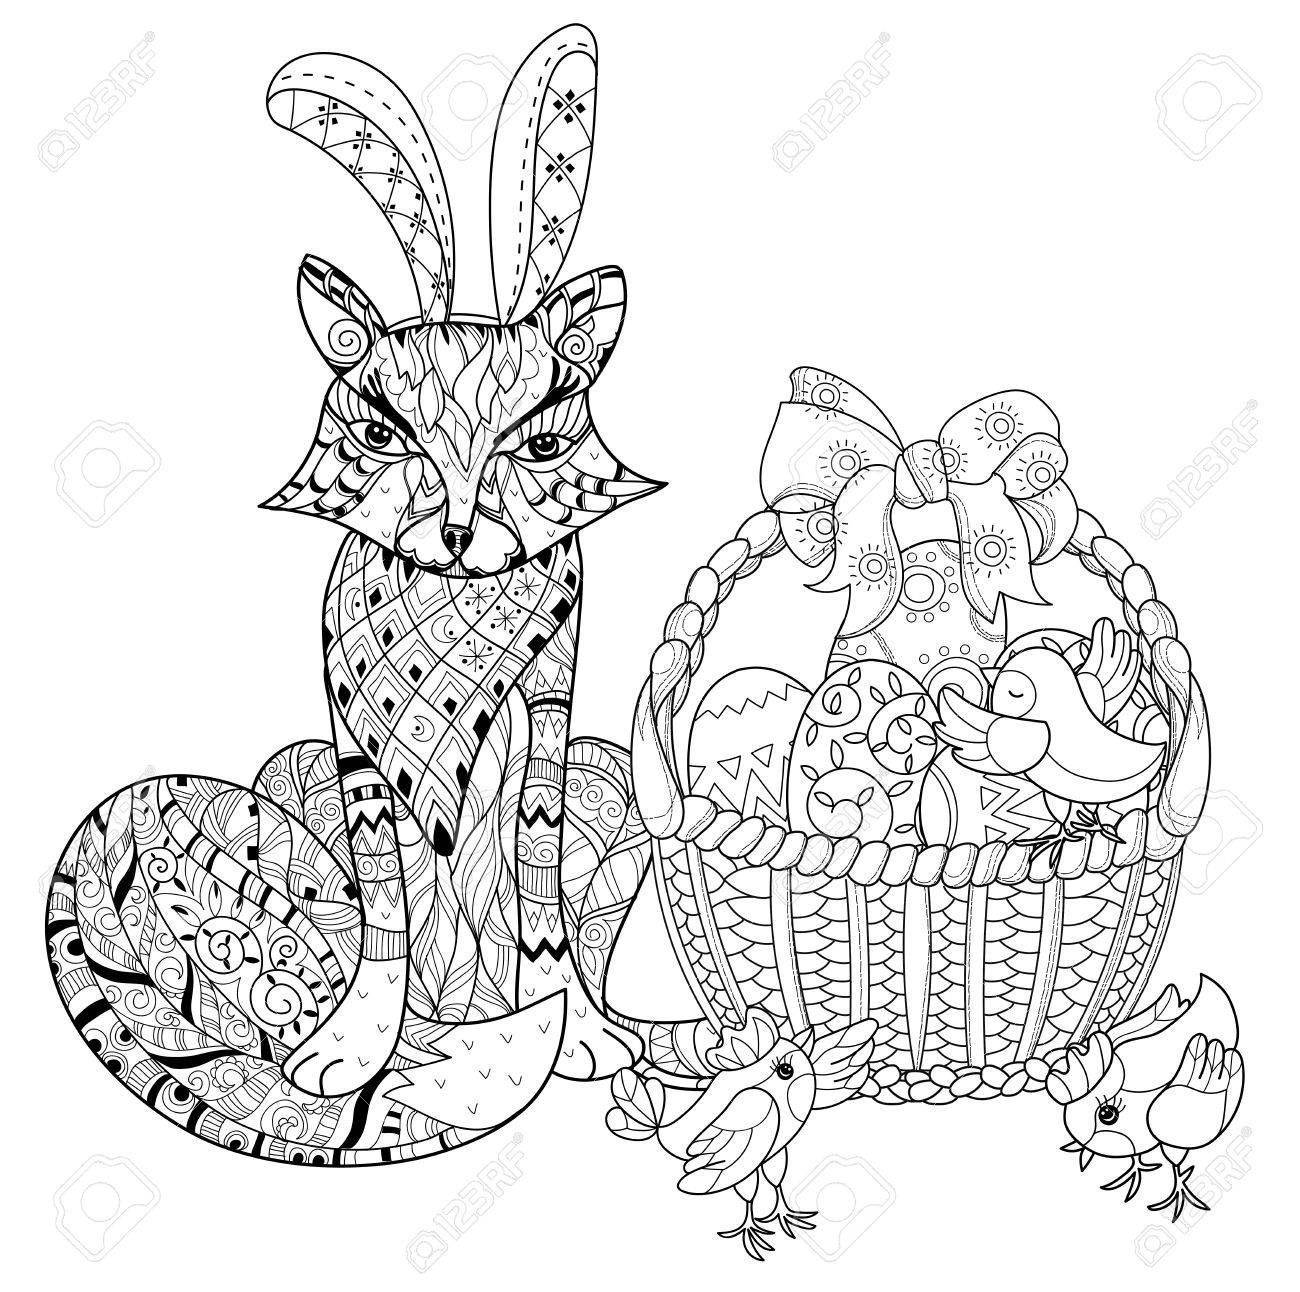 Hand Drawn Doodle Outline Easter Eggs In Basket With Chicken And Fox Decorated Ornaments